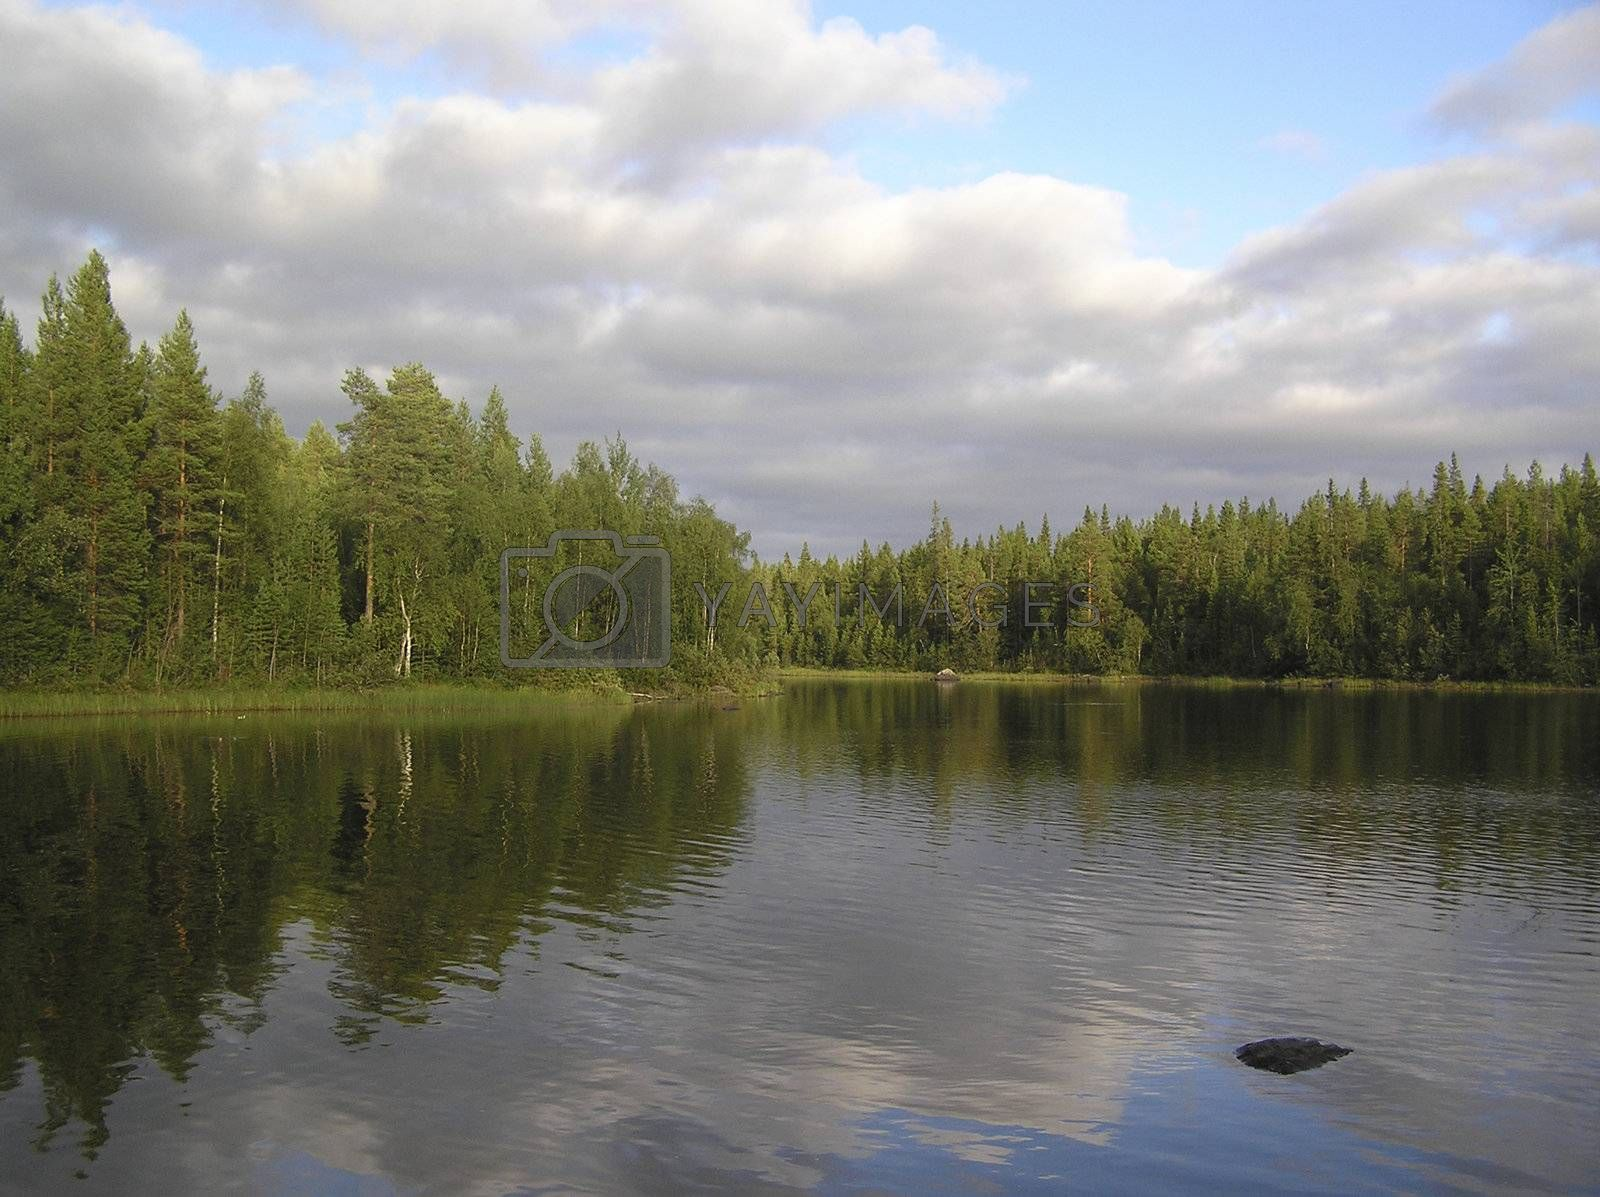 Wood lake under the blue sky, surrounded with pines